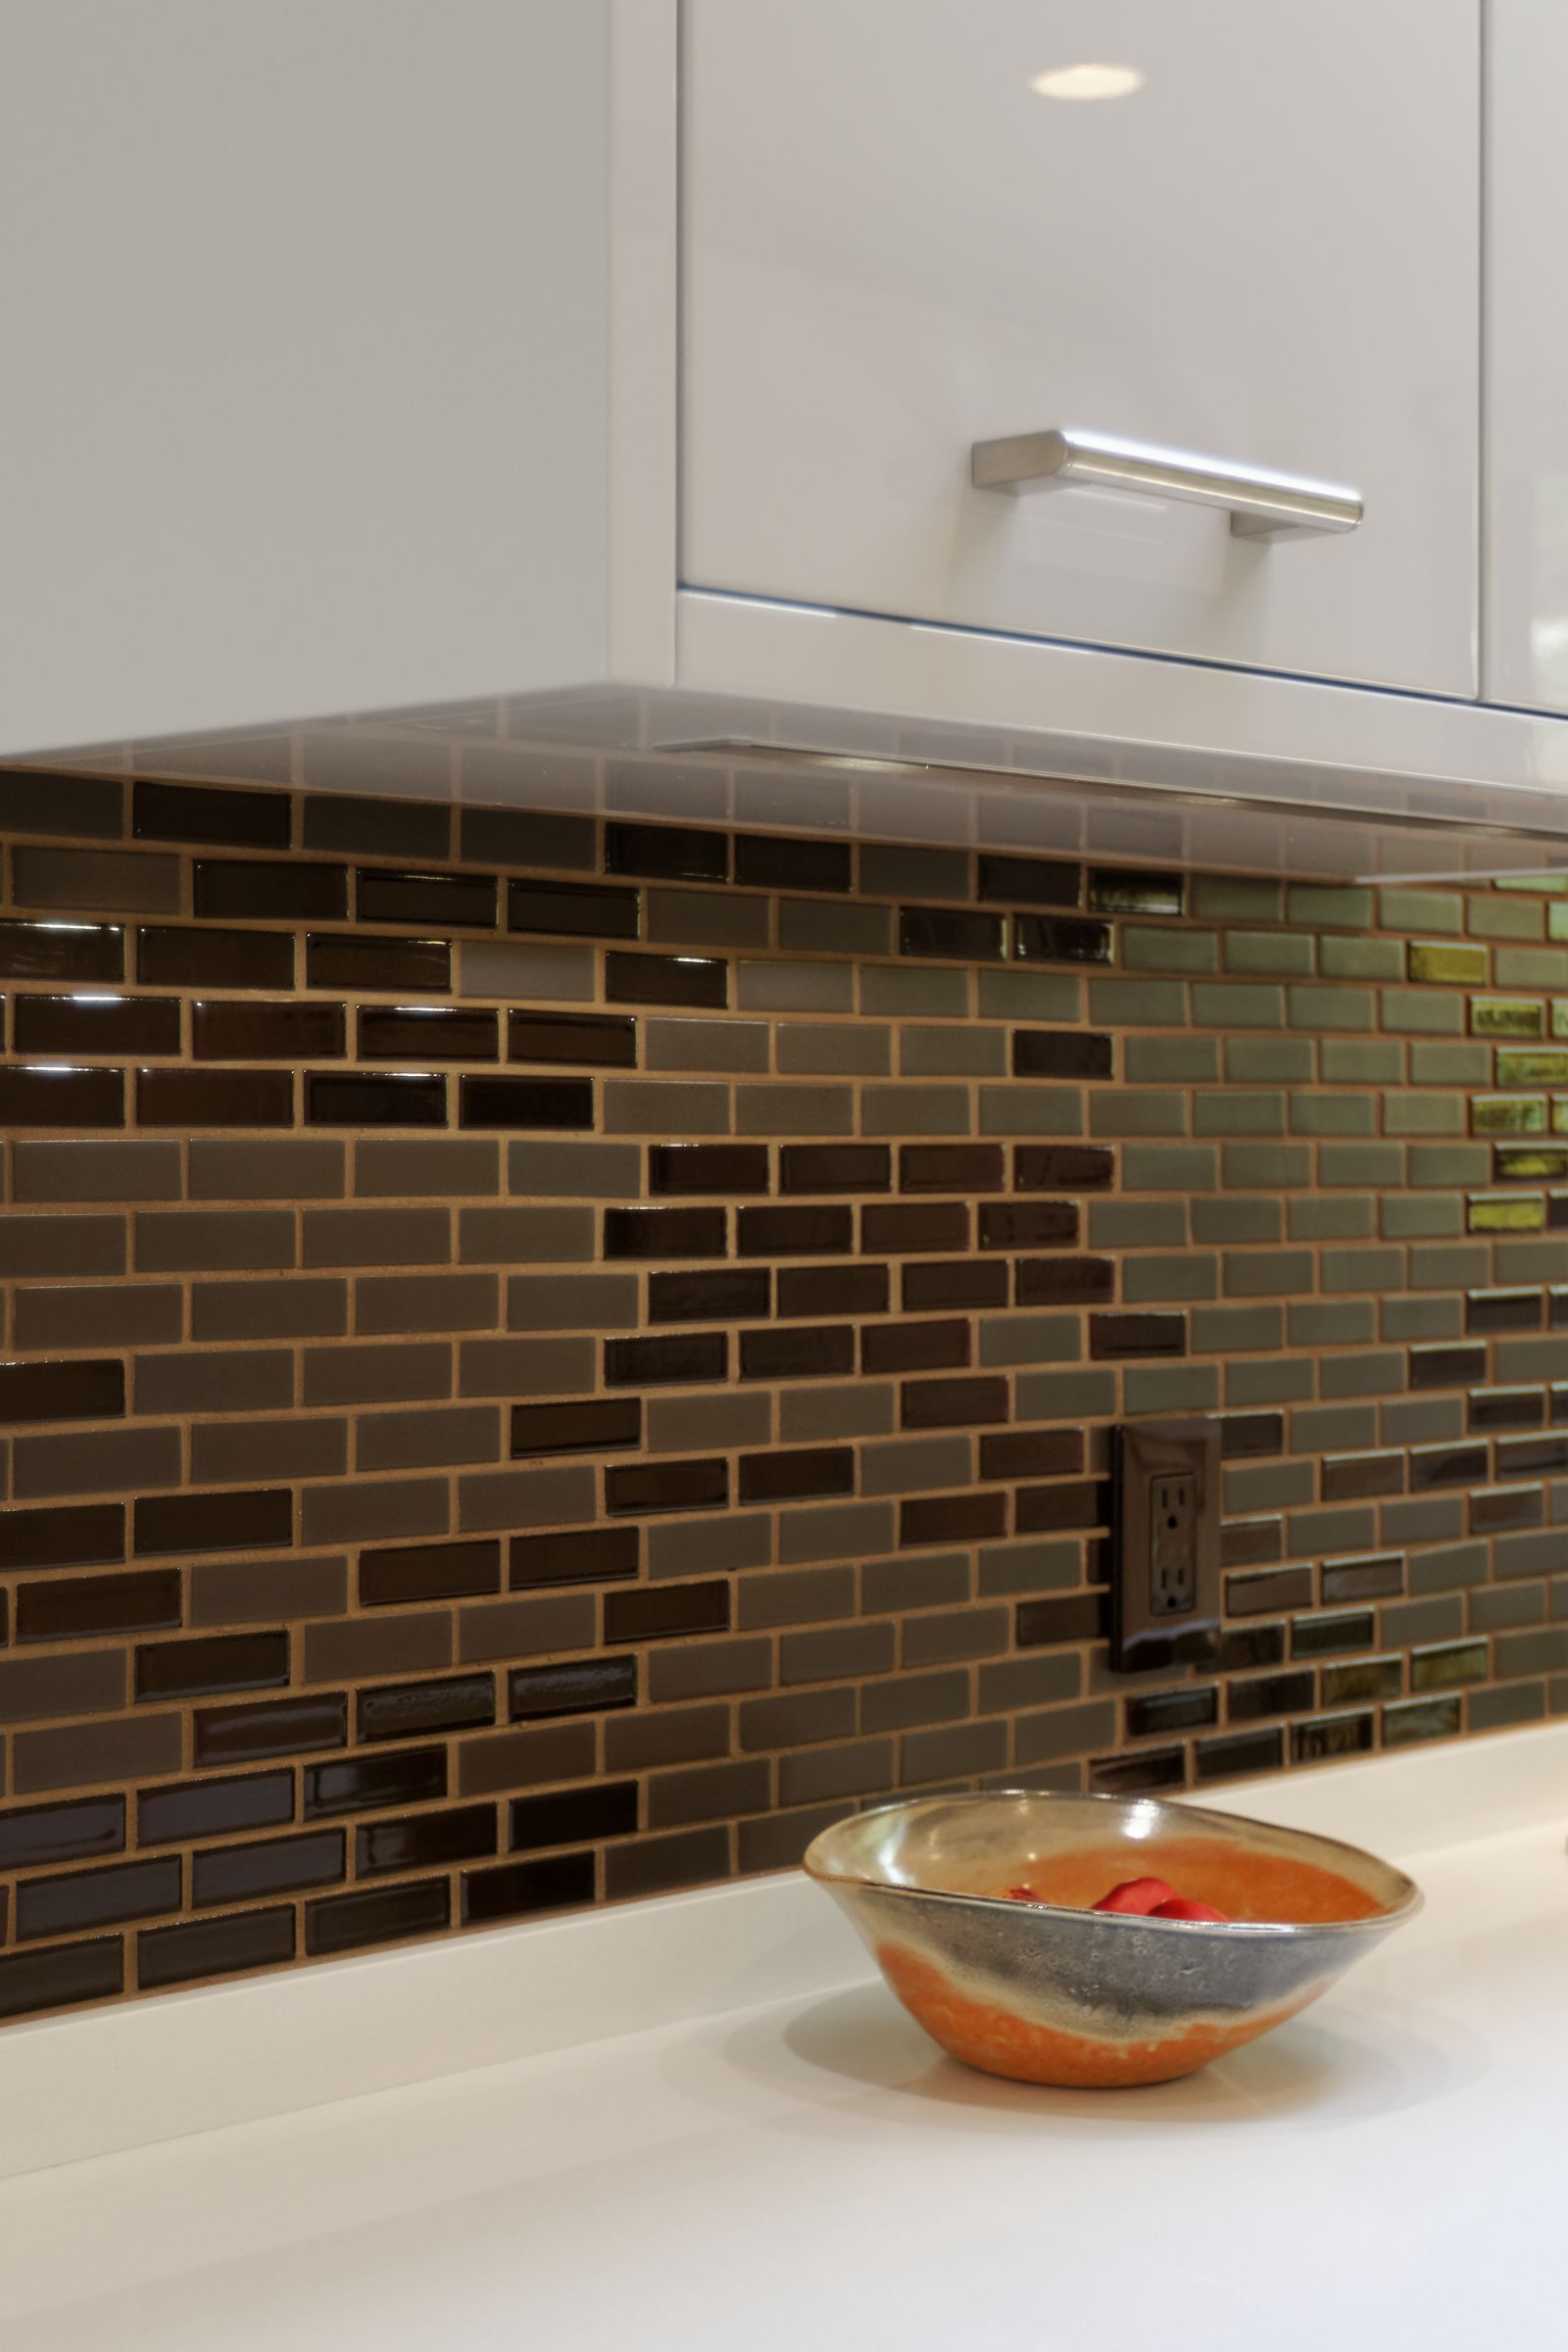 By having a mix of tile sheen, the light seems to play and backsplash appears to have movement.